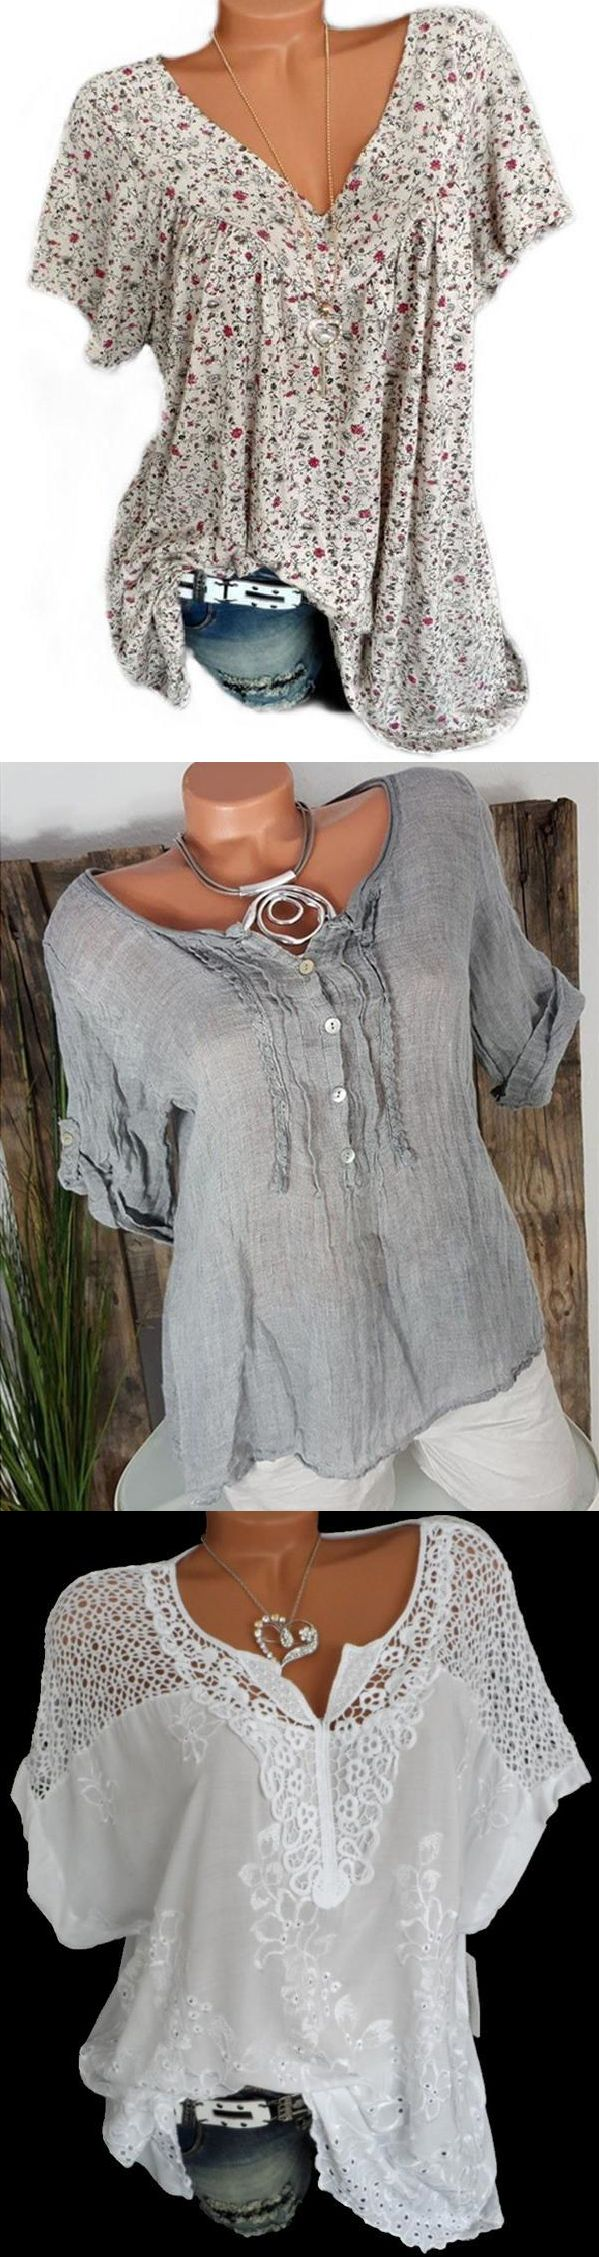 Shop Now>>>Hot Selling Casual Plus Size Blouse Shirts Tops collection & Free Shipping $80+!